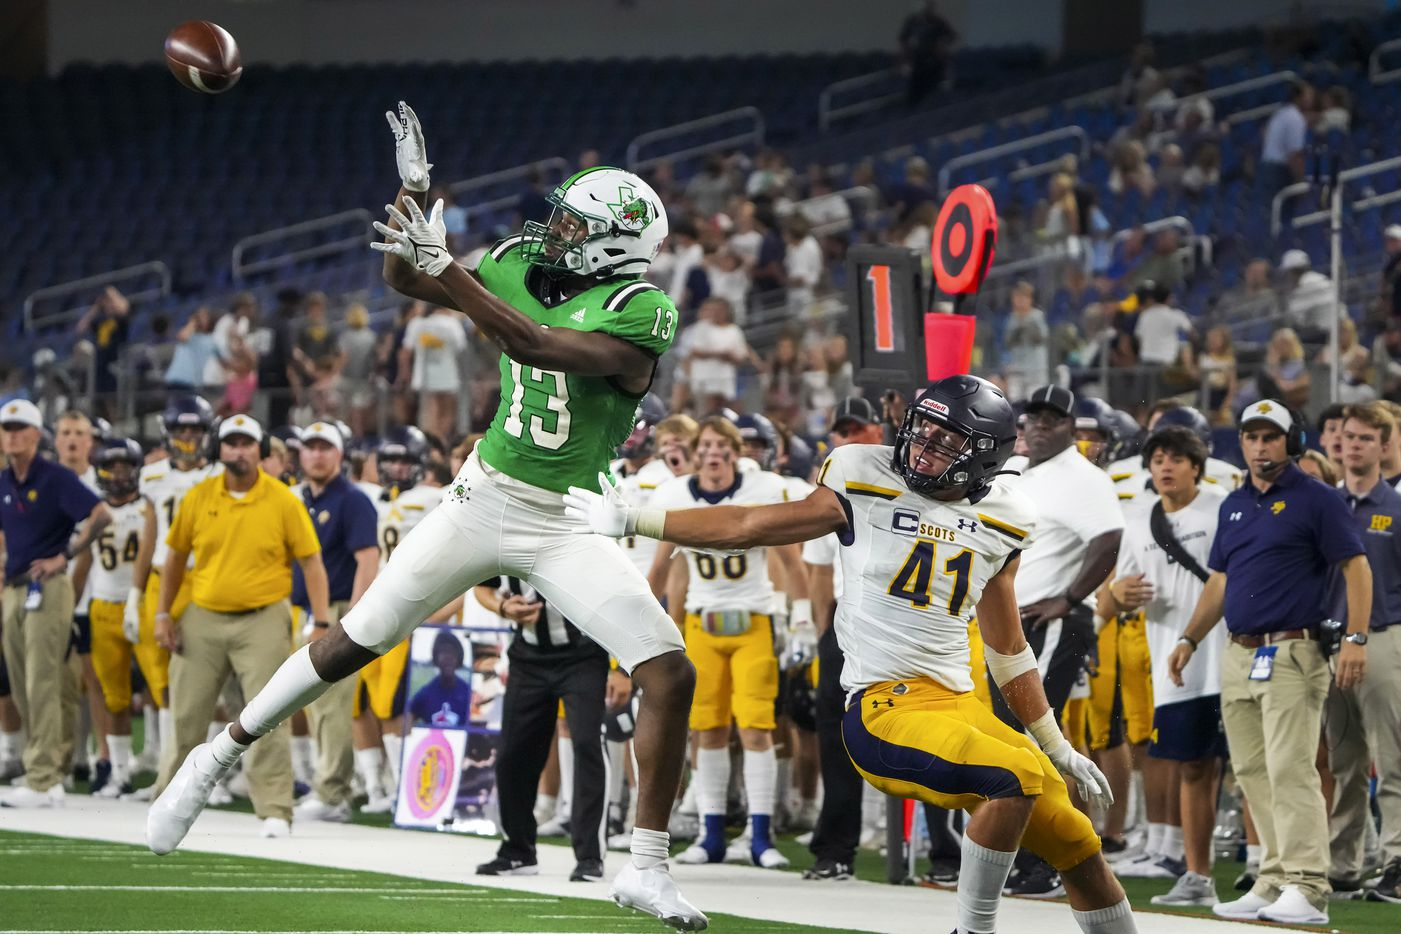 Southlake Carroll wide receiver RJ Maryland (13) reaches for a pass as Highland Park's George Wright (41) defends during the second half of a high school football game at AT&T Stadium on Thursday, Aug. 26, 2021, in Arlington.